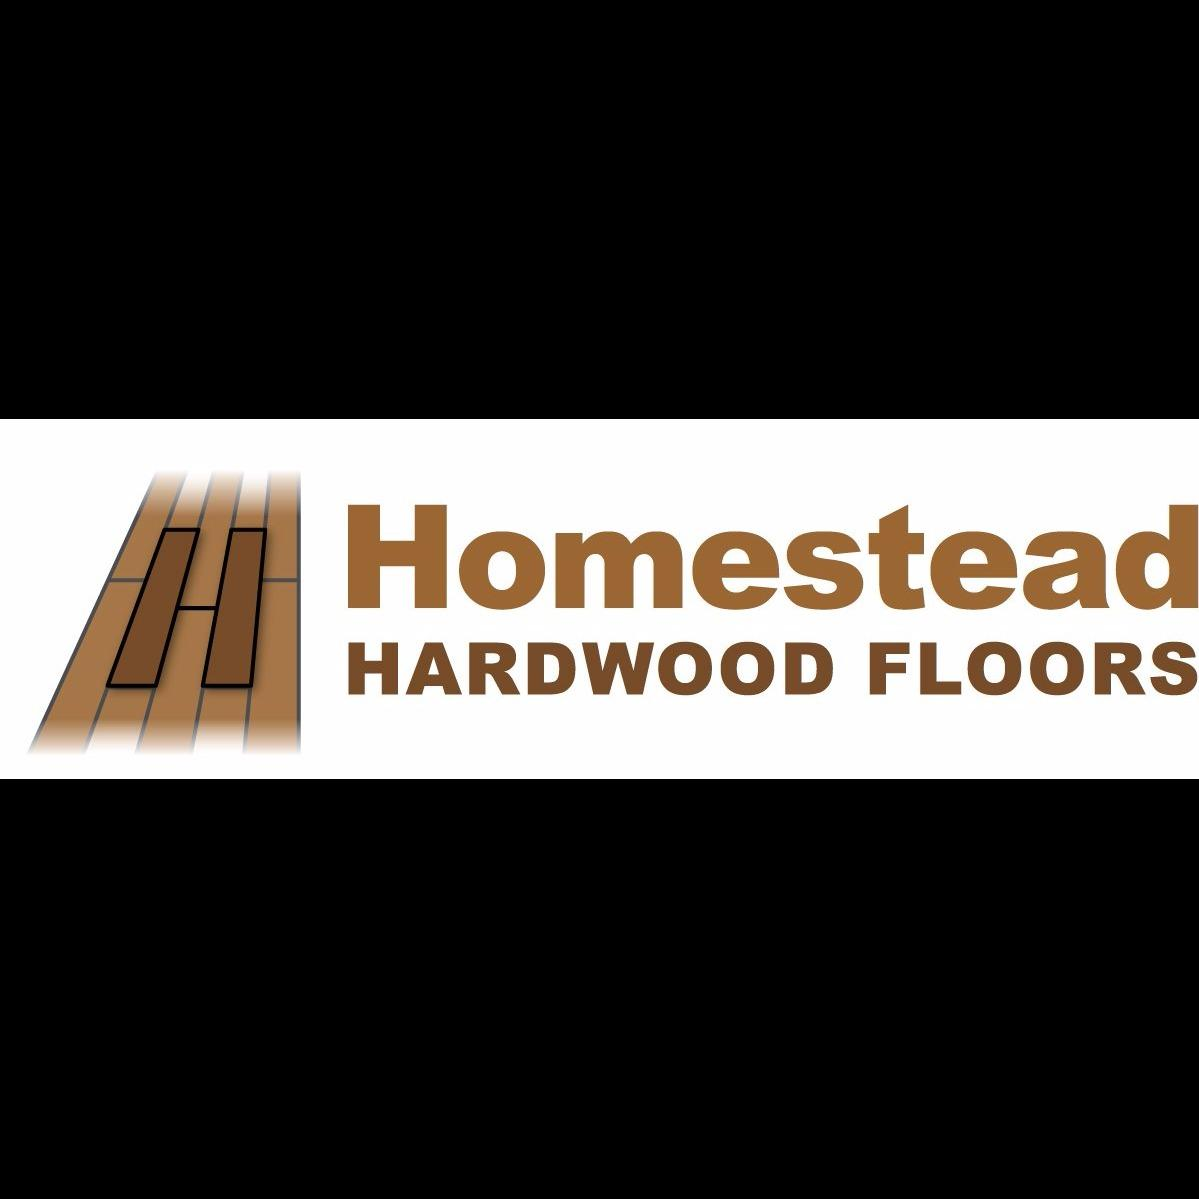 Homestead hardwood floors llc coupons near me in 8coupons for Hardwood flooring near me